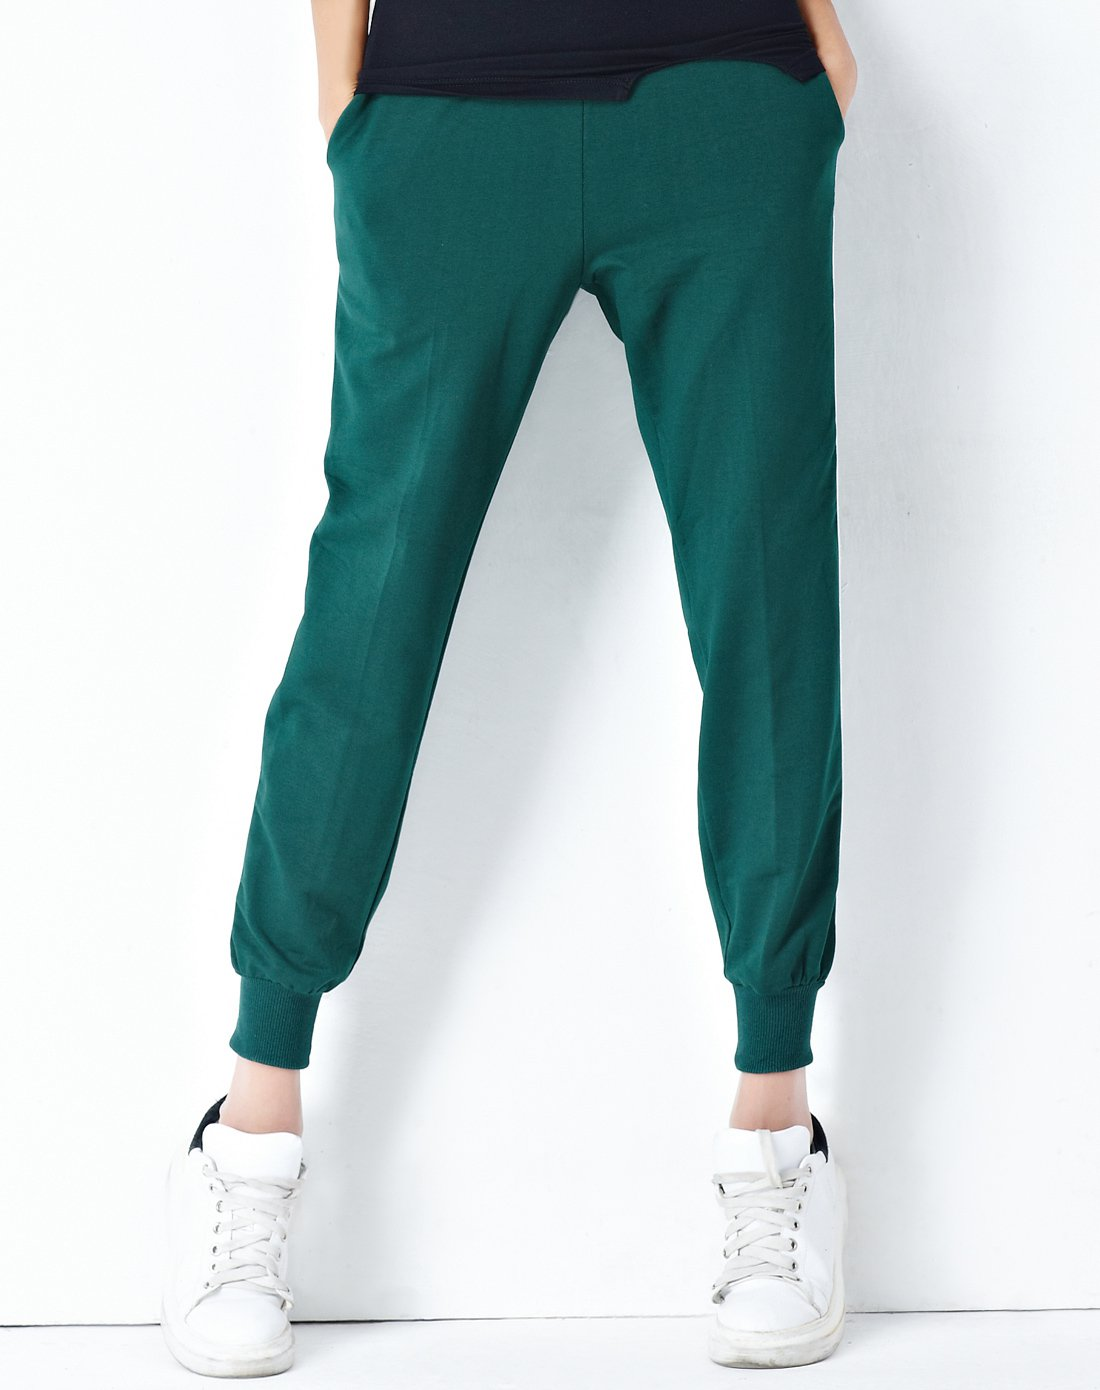 Sporty Pants For Women